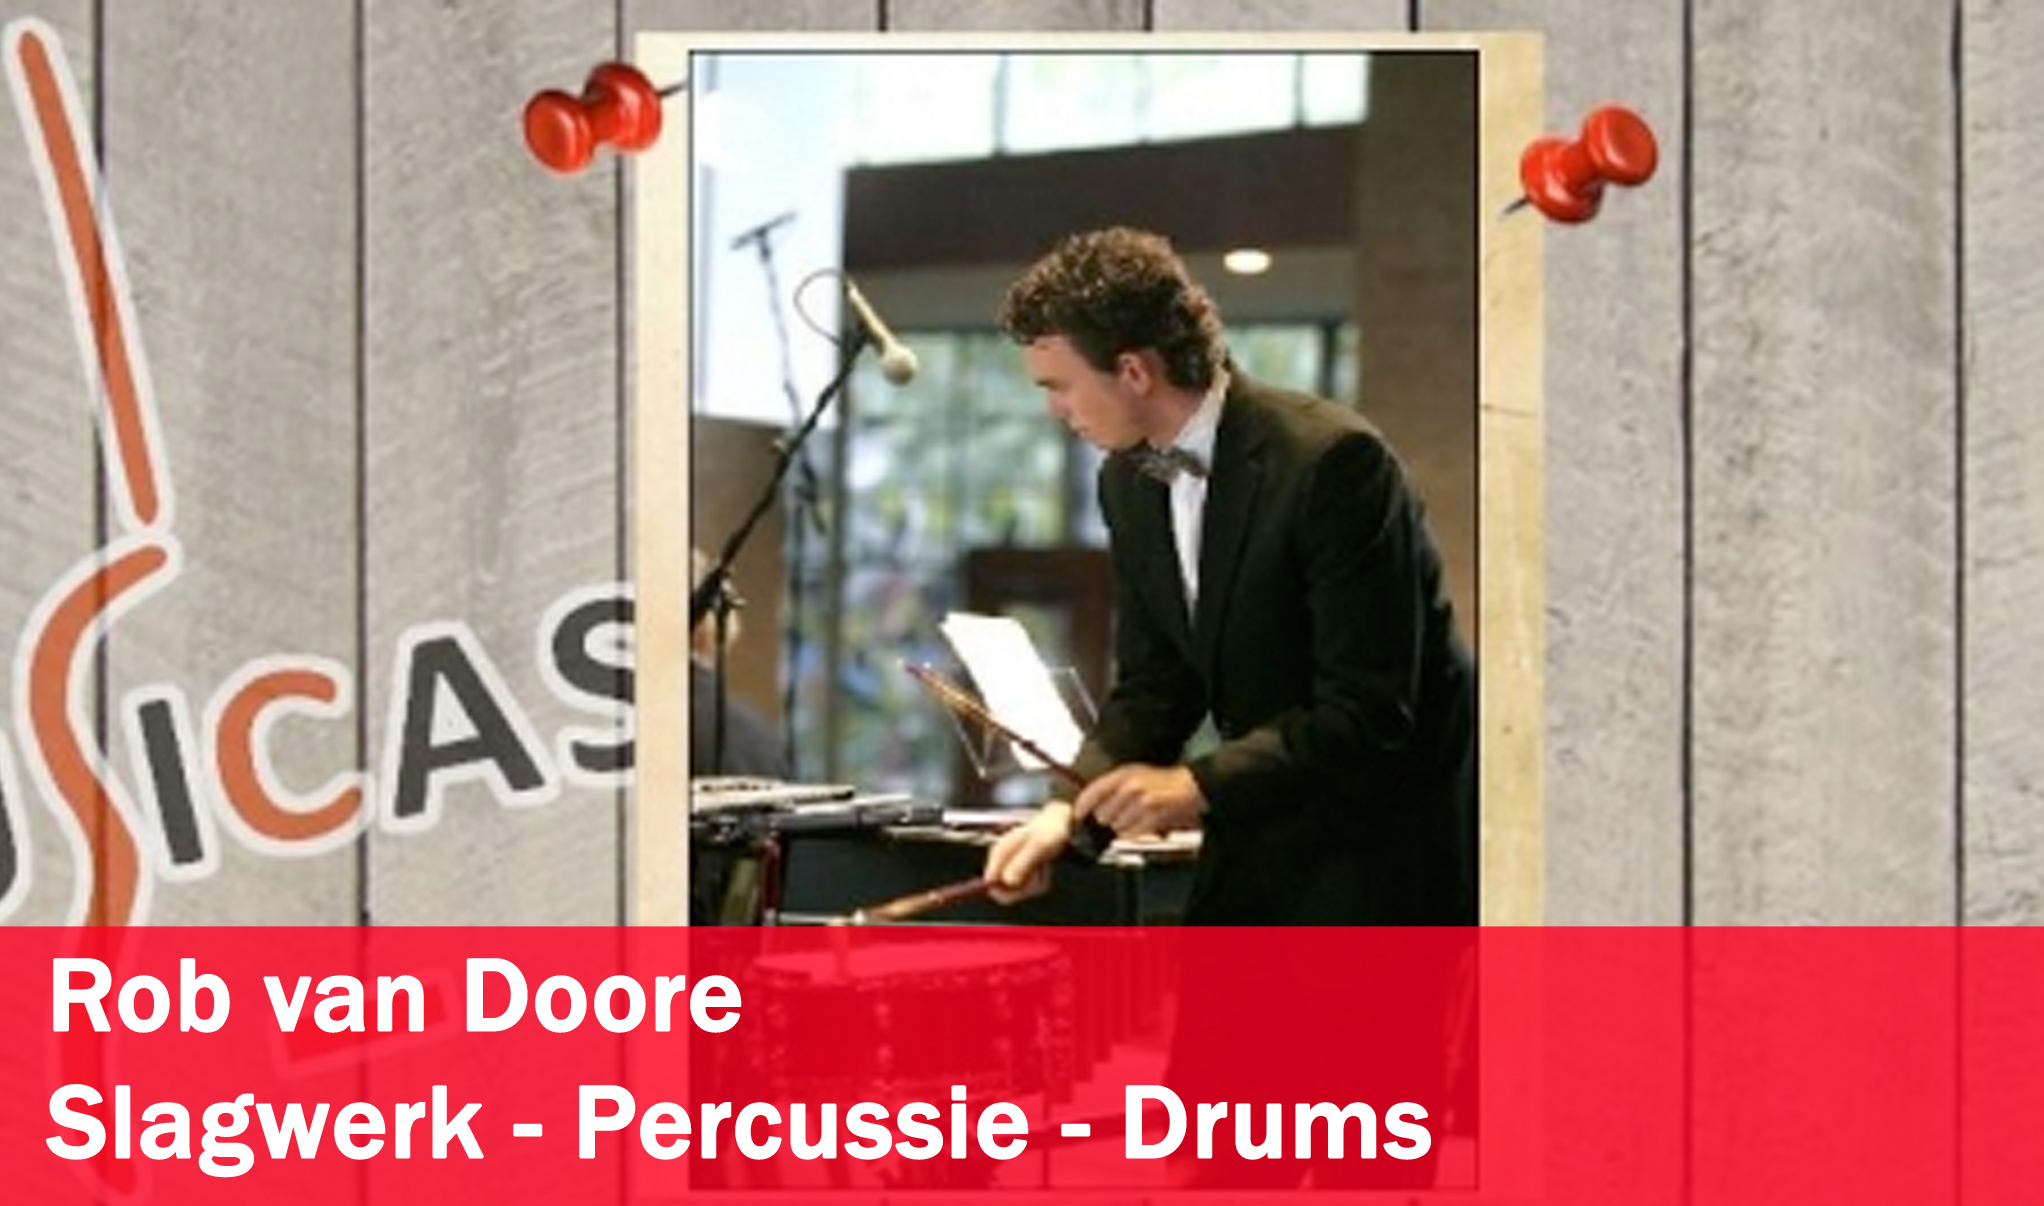 Rob van Doore <br>Slagwerk - Percussie - Drums